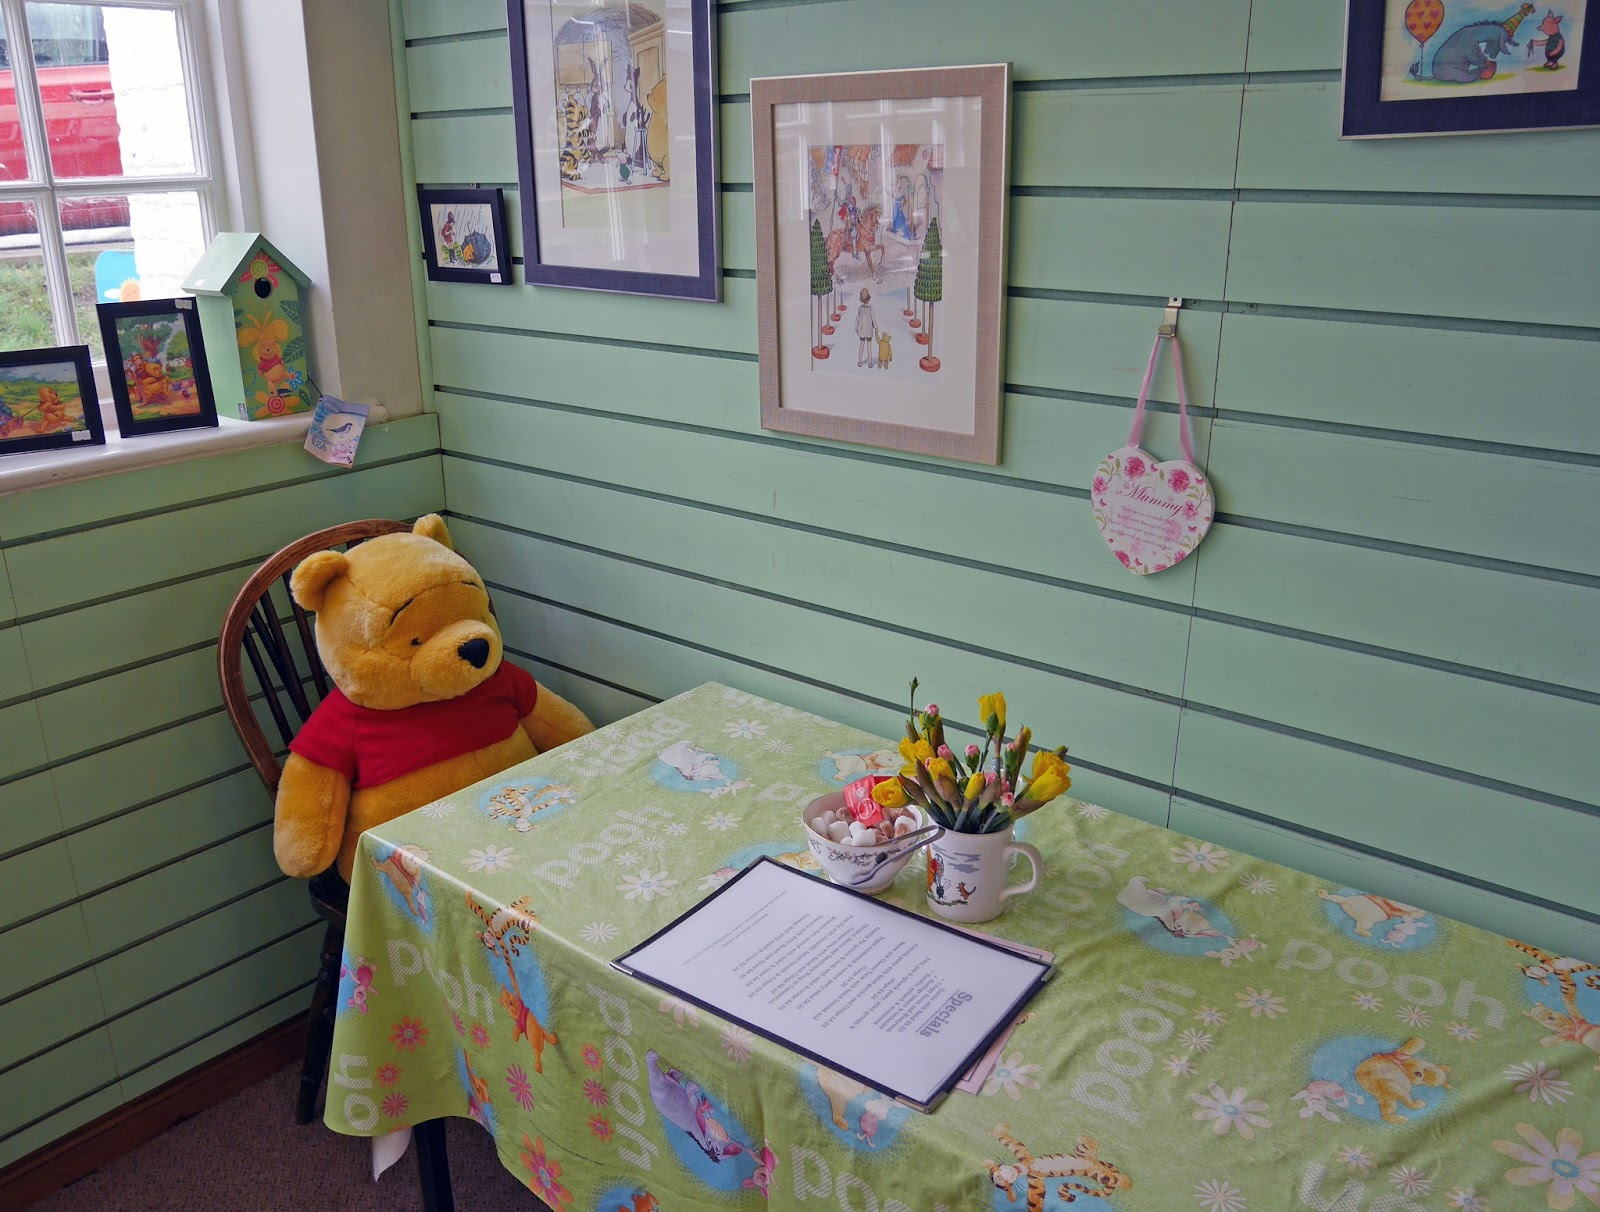 Winnie the Pooh merchandise at the Pooh Corner gift shop in Hartfield, East Sussex